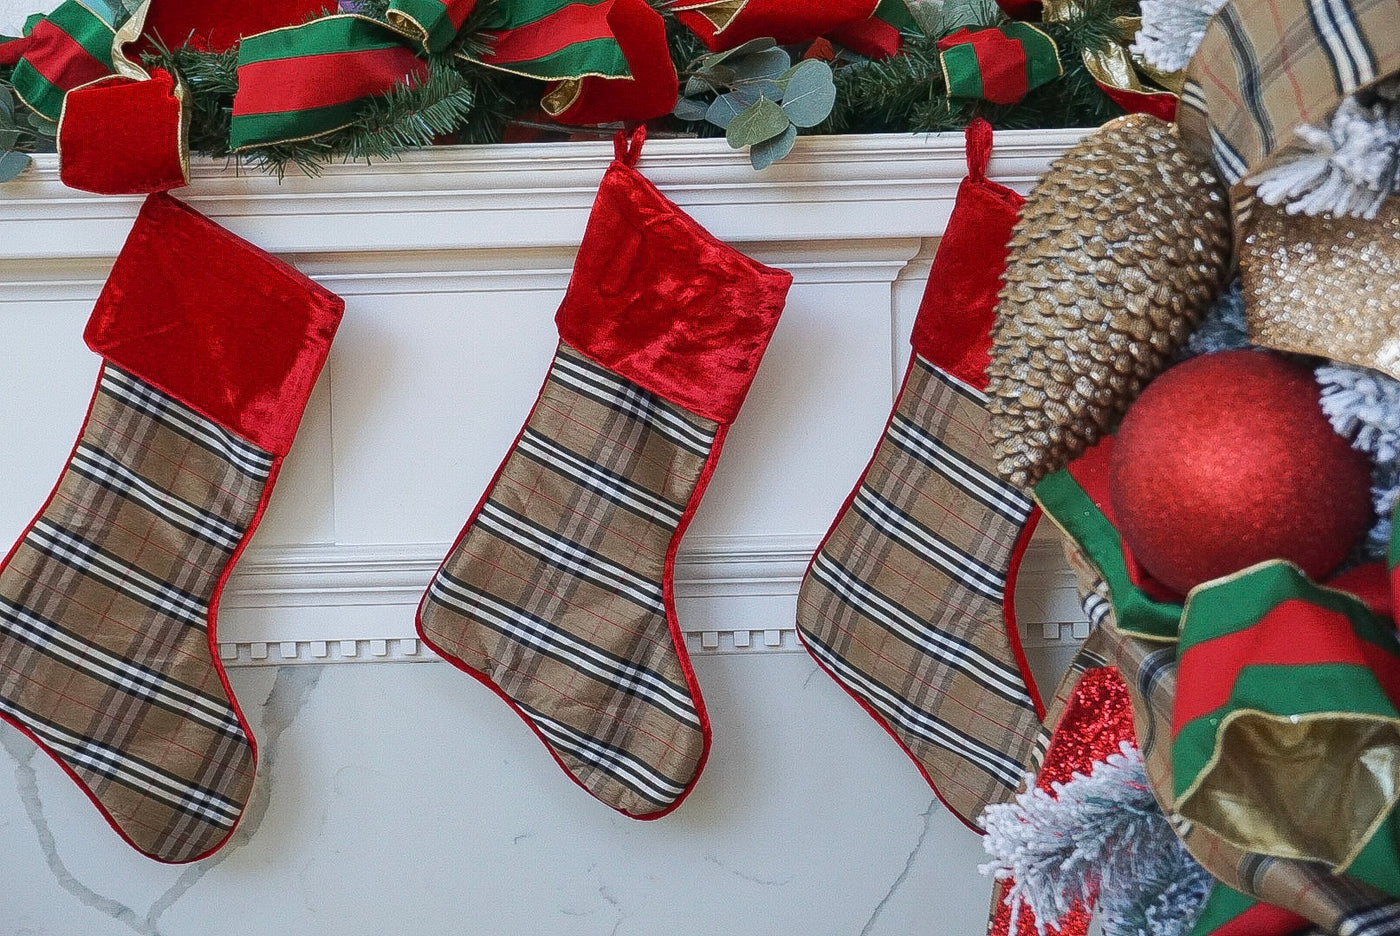 helloholidays,Tan Tartan Plaid Stocking with Red Velvet Cuff,Farrisilk,Stocking